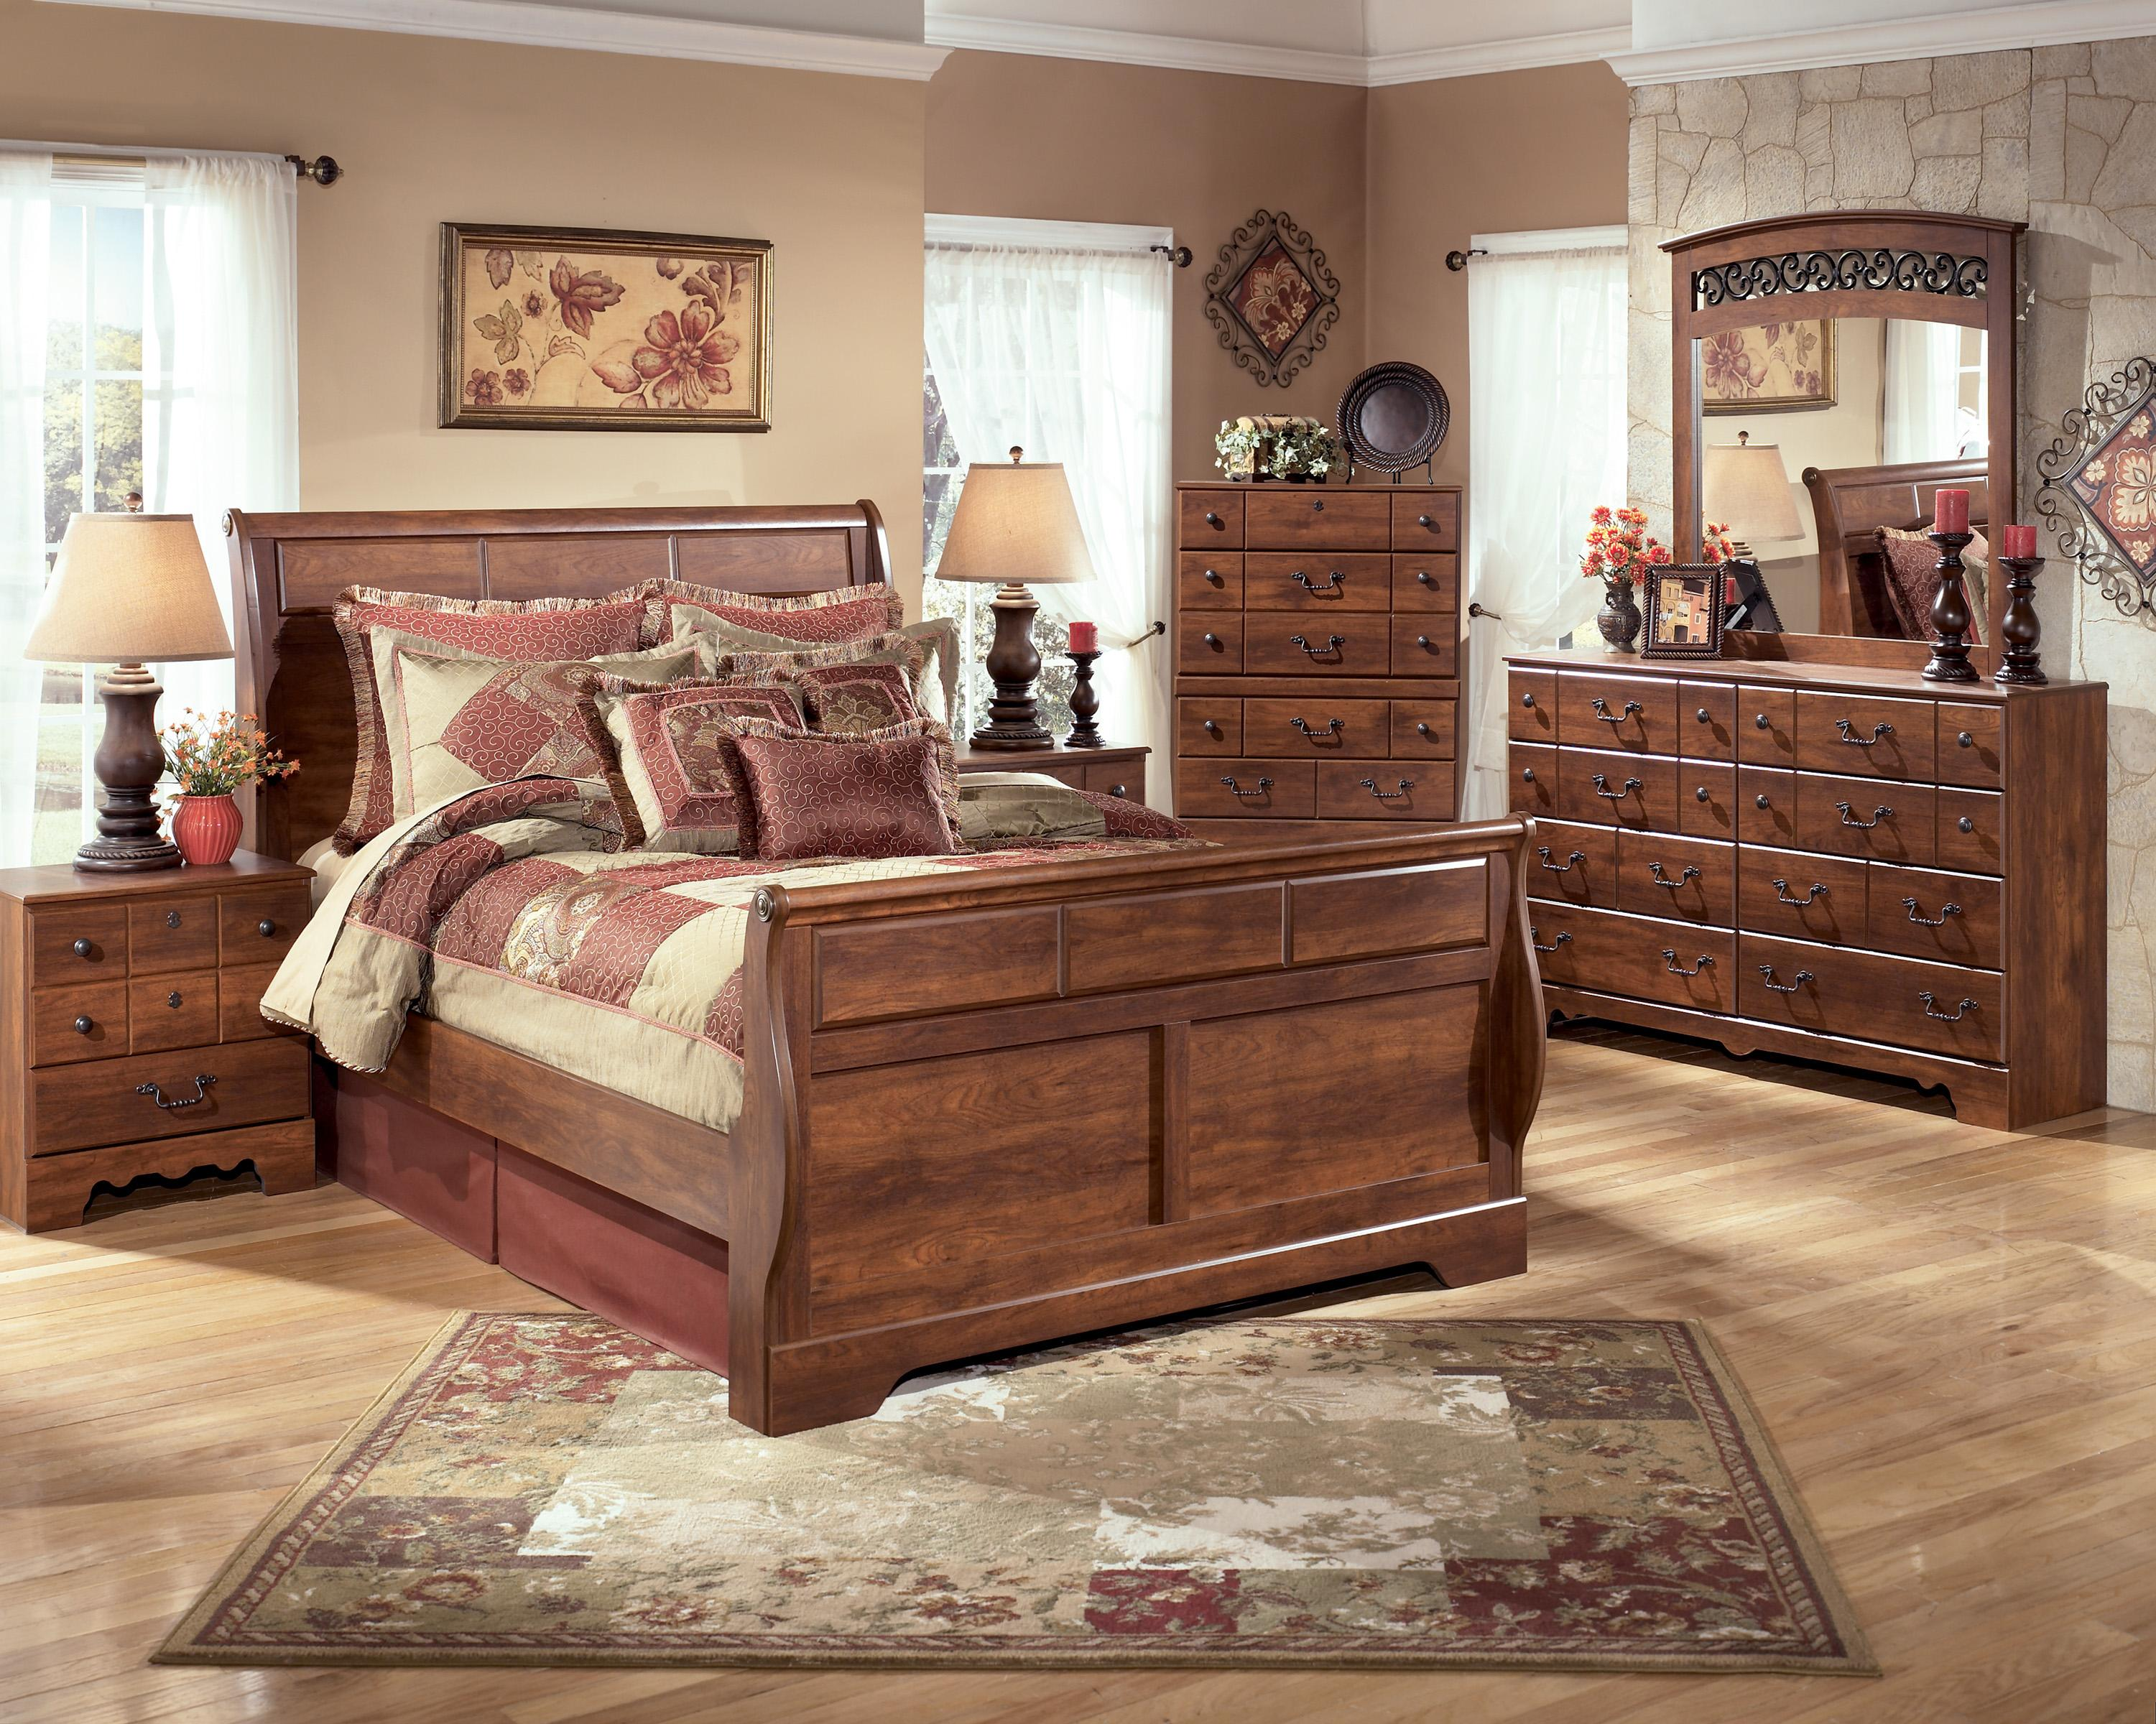 Signature Design By Ashley Timberline Queen Bedroom Group